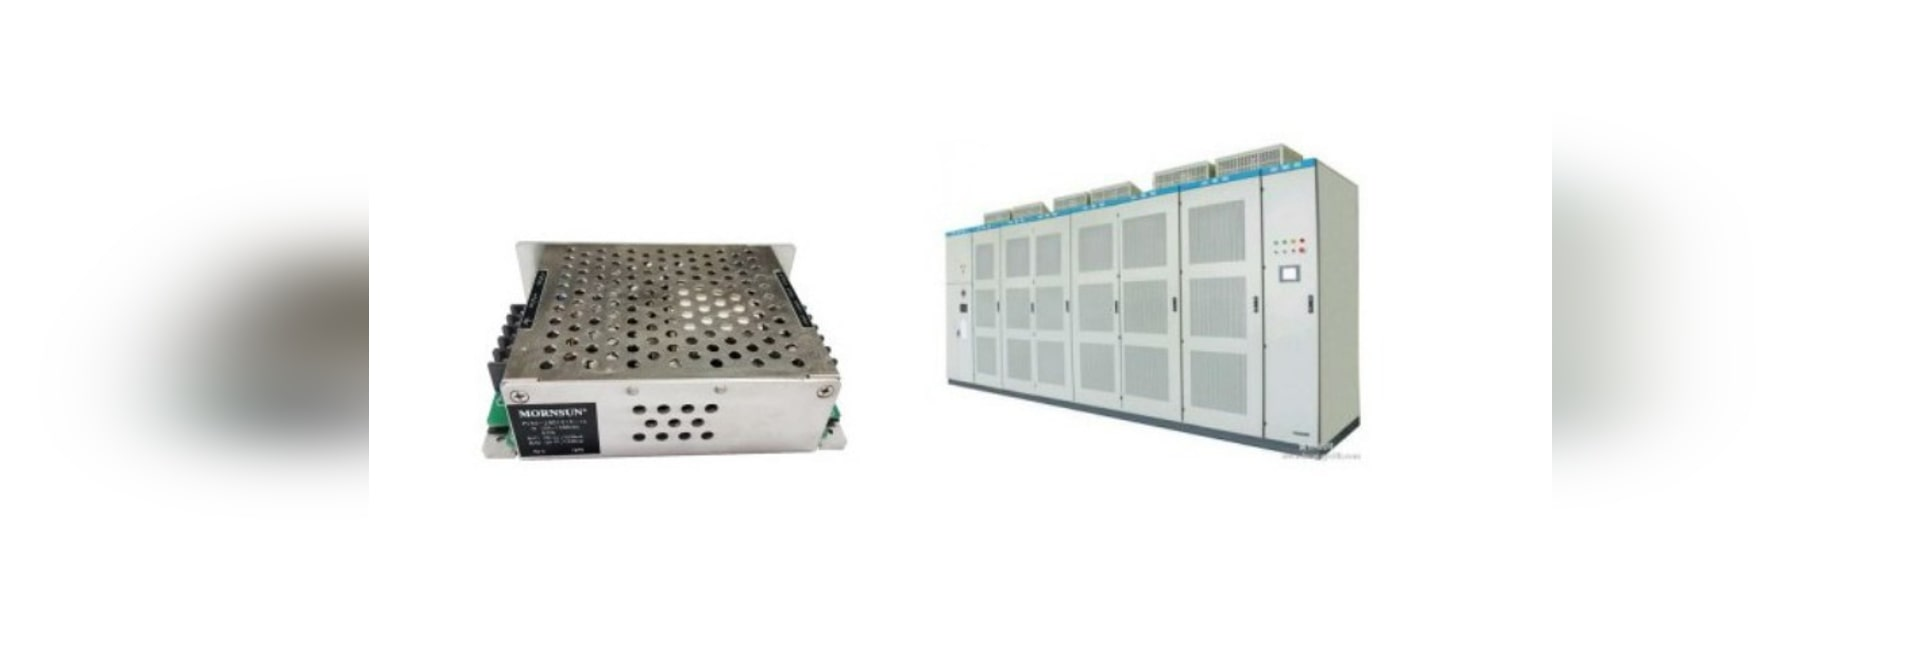 150-1500VDC (10:1) Wide Input Caged Power Supply PV45